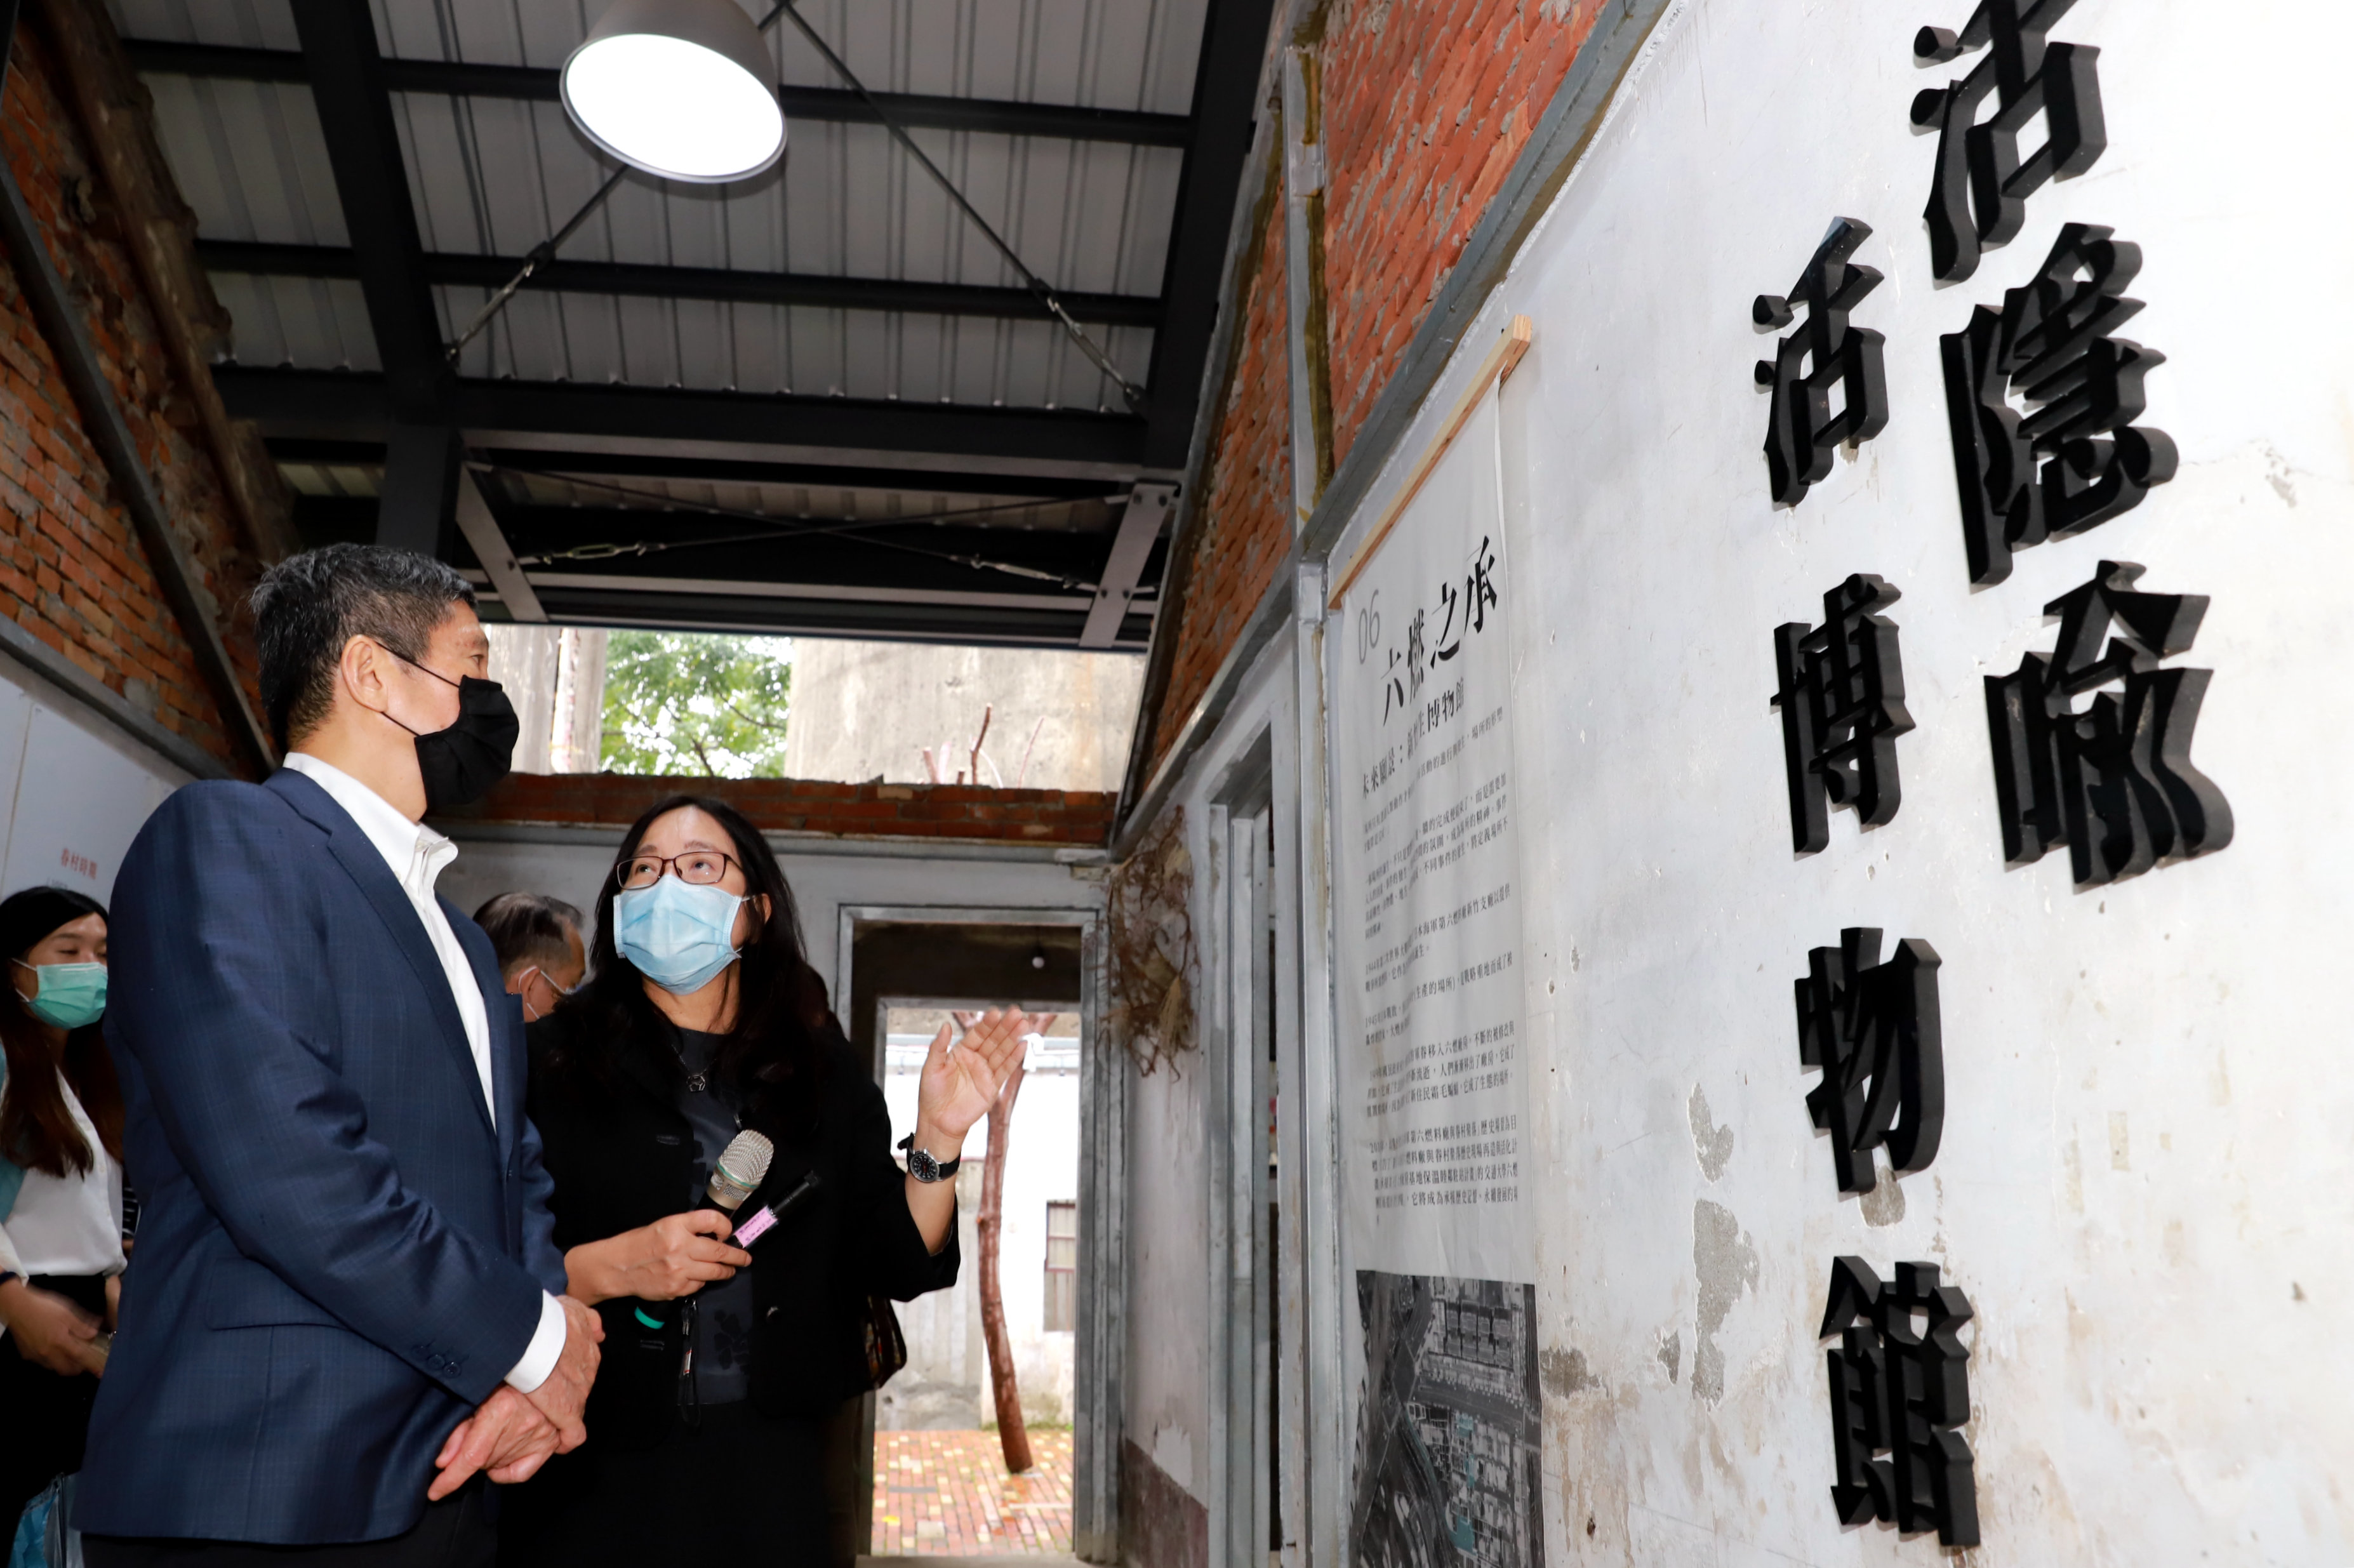 Minister Lee visits restored and repurposed historical sites in Hsinchu